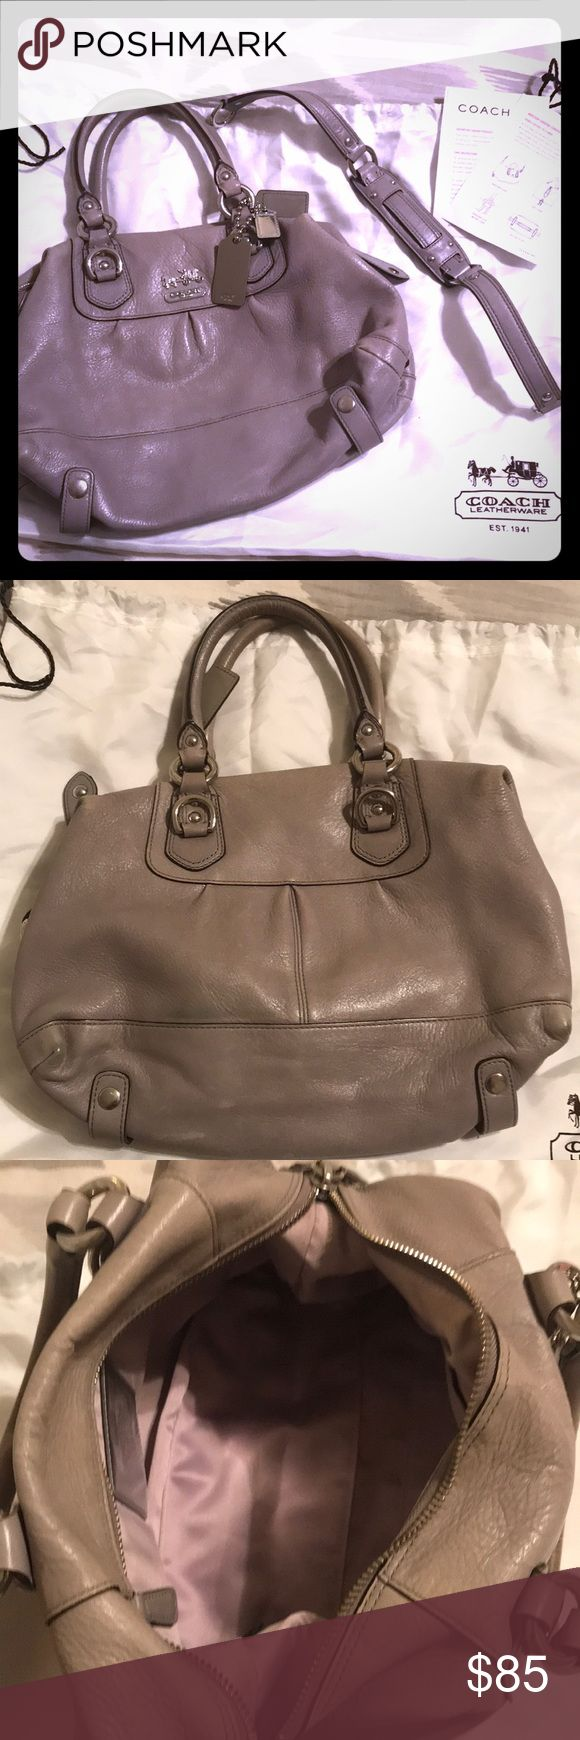 """Coach Madison Sabrina Convertible Strap in Gray Leather Coach bag in gray. Can be worn as a satchel or a hobo. Gently used. Comes with dust bag.   Length: 12.5"""" Width: 7.5"""" Coach Bags Satchels"""